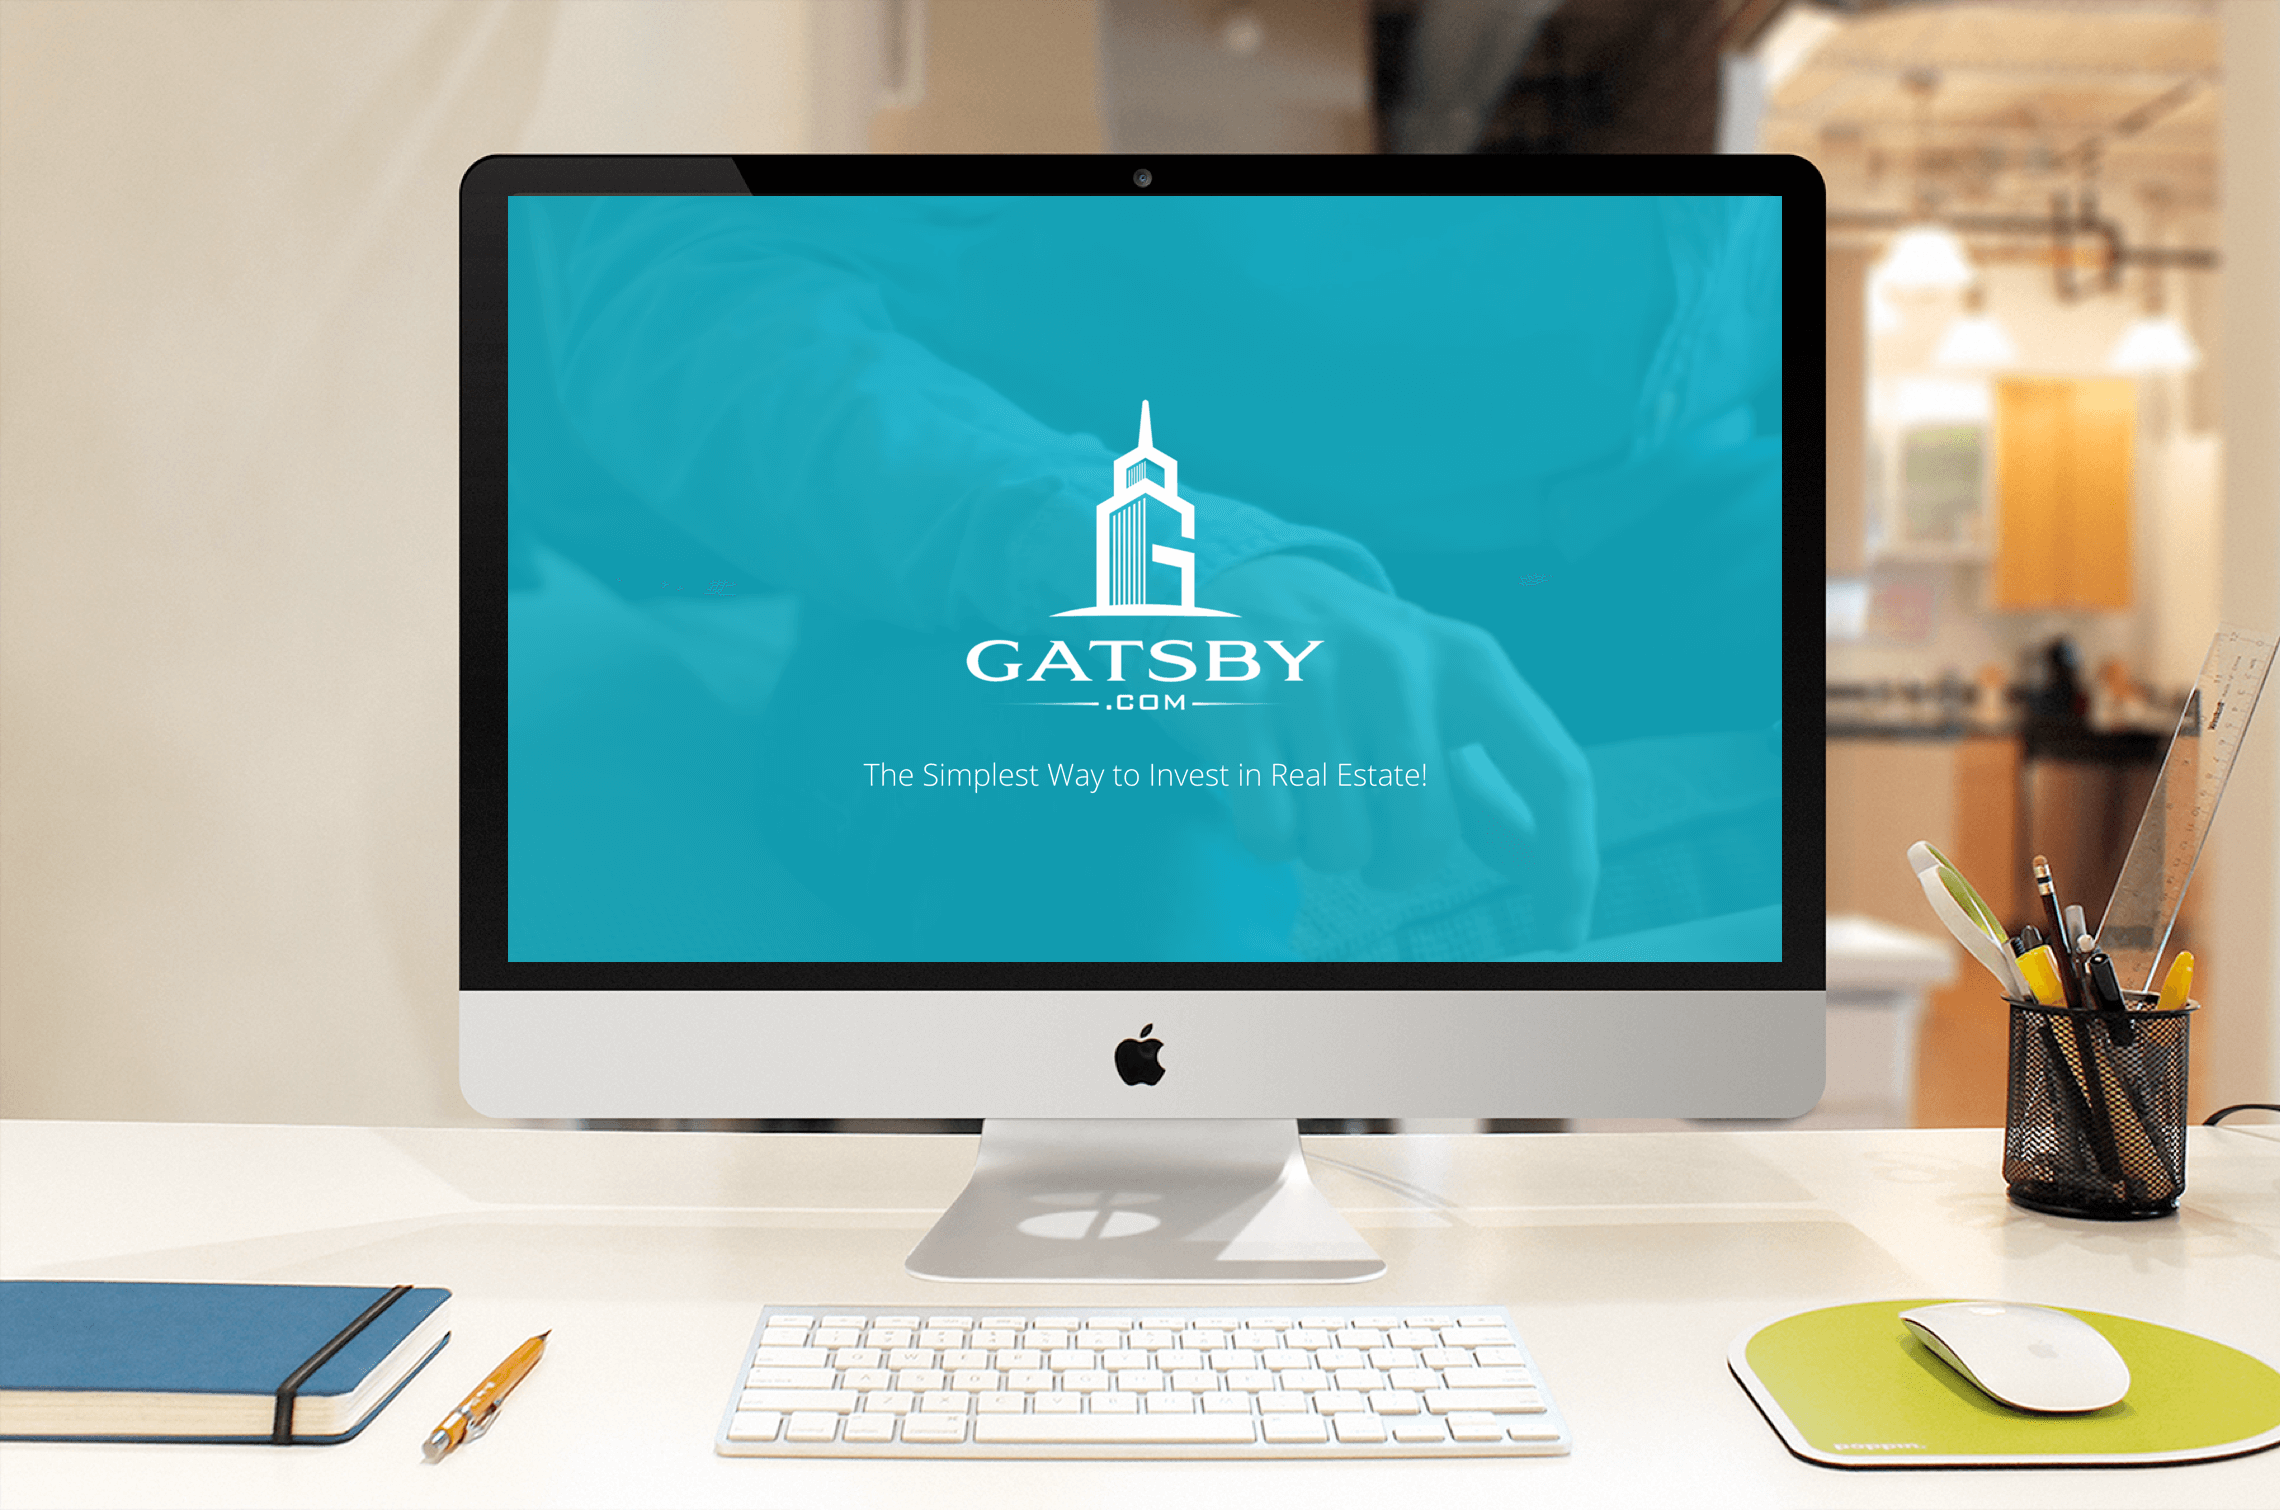 wordpress-gatsby-real-estate-crowdfunding-fi